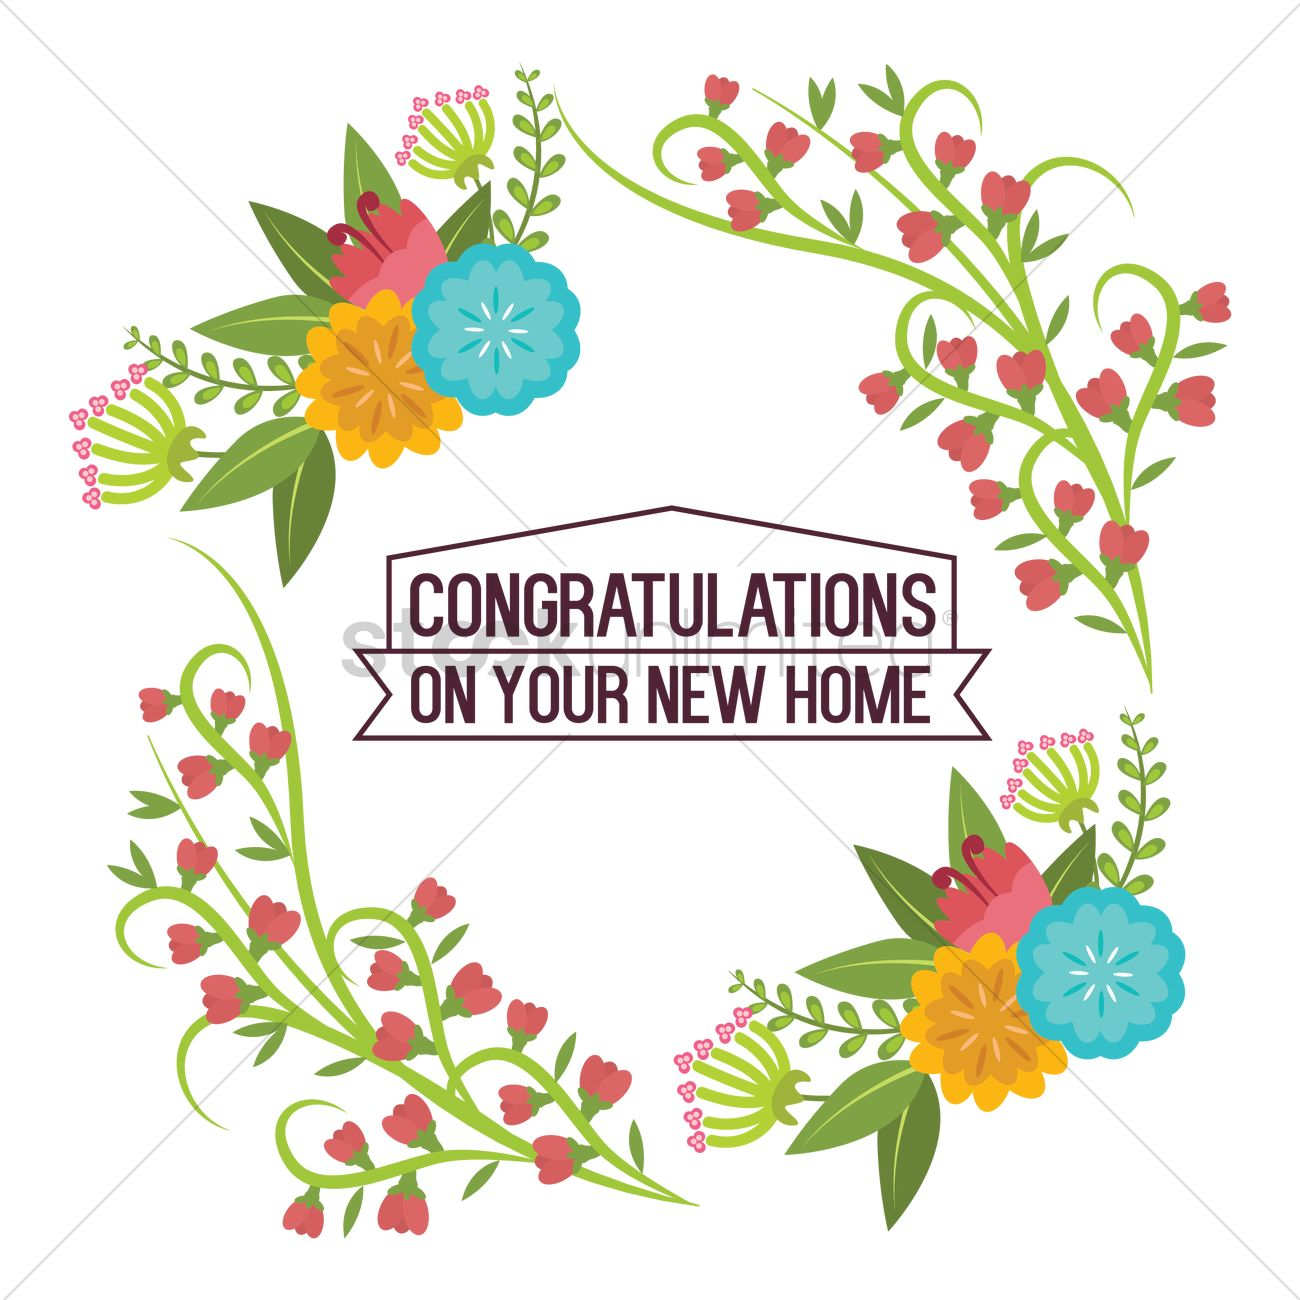 Congratulations on your new home Vector Image - 1797501